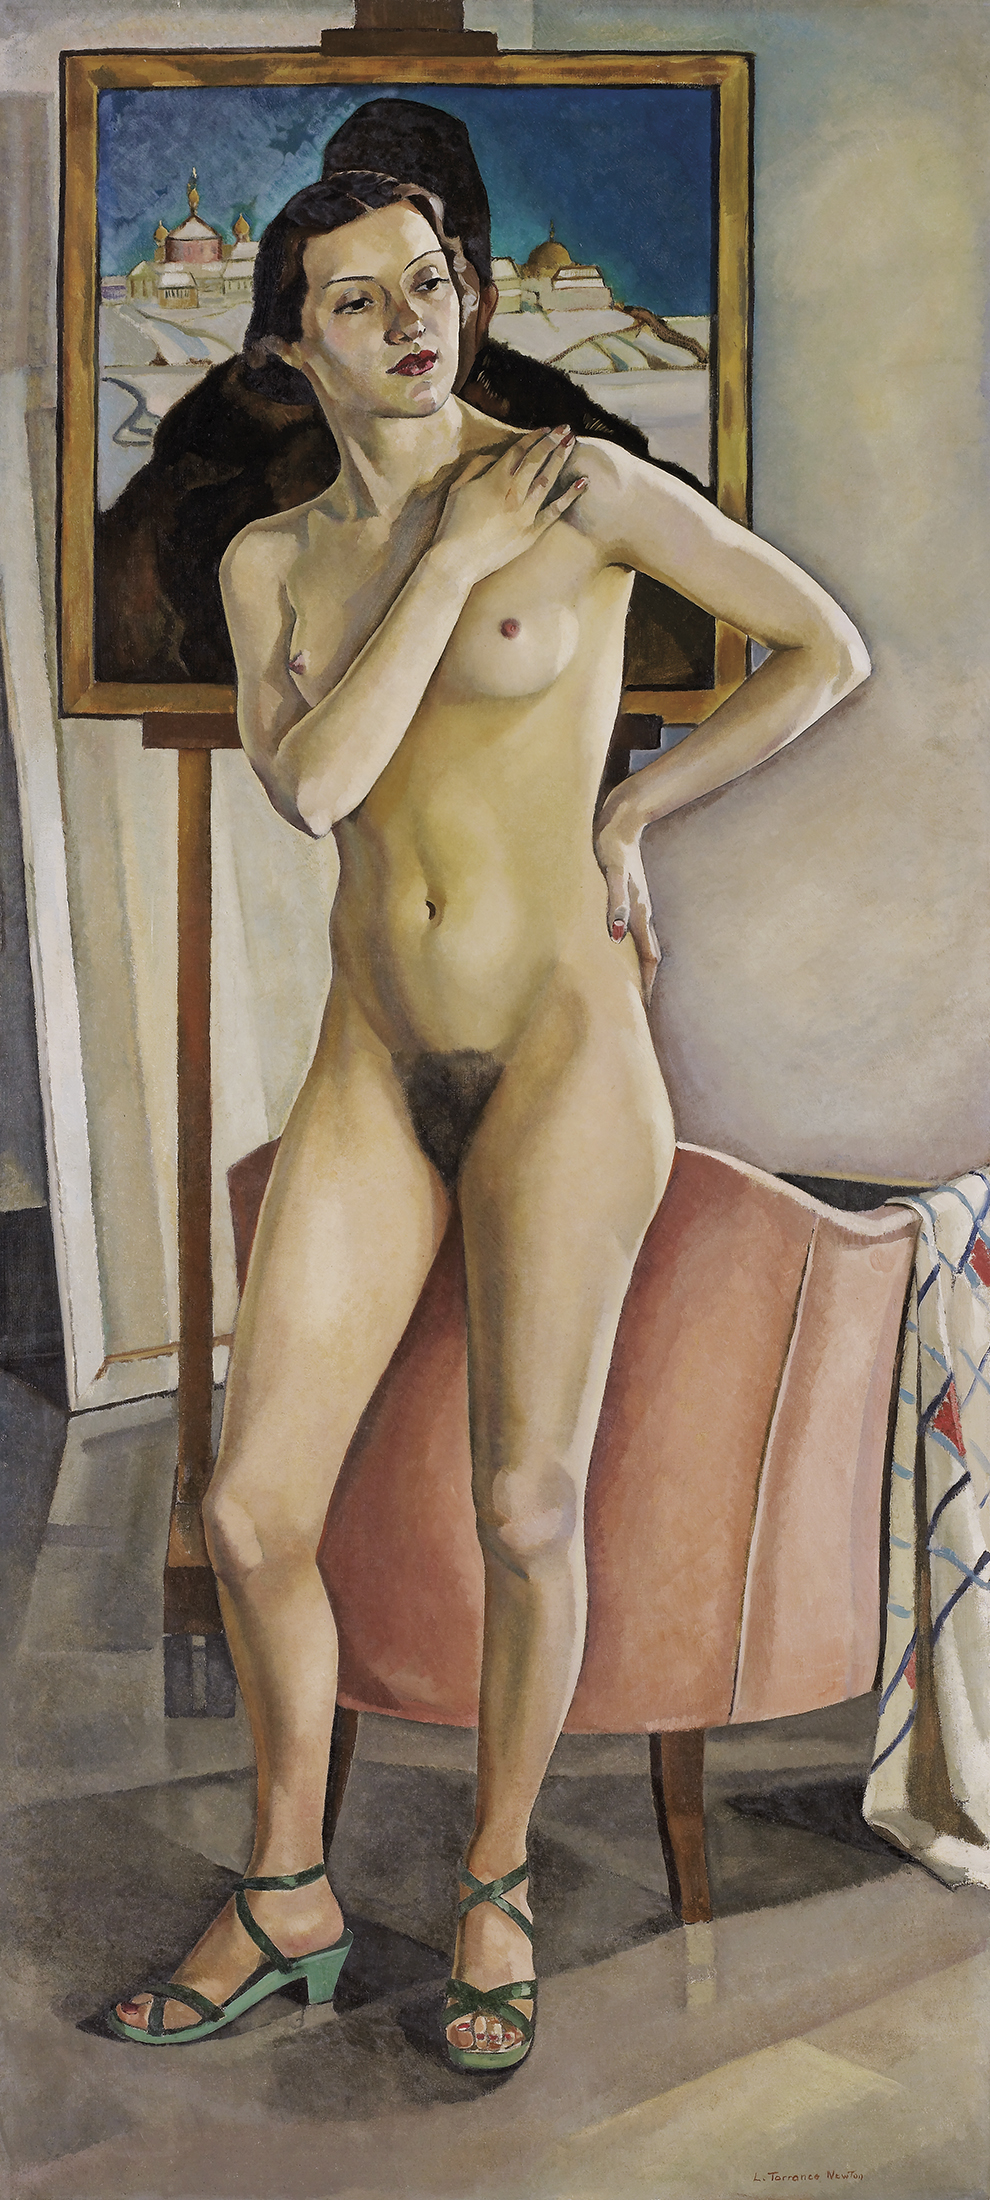 This larger-than-life-size portrait represents a nude woman in a standing pose with hips slightly tilted. The model is wearing makeup and green sandals. Her head and bust mask a portrait set on an easel behind her.